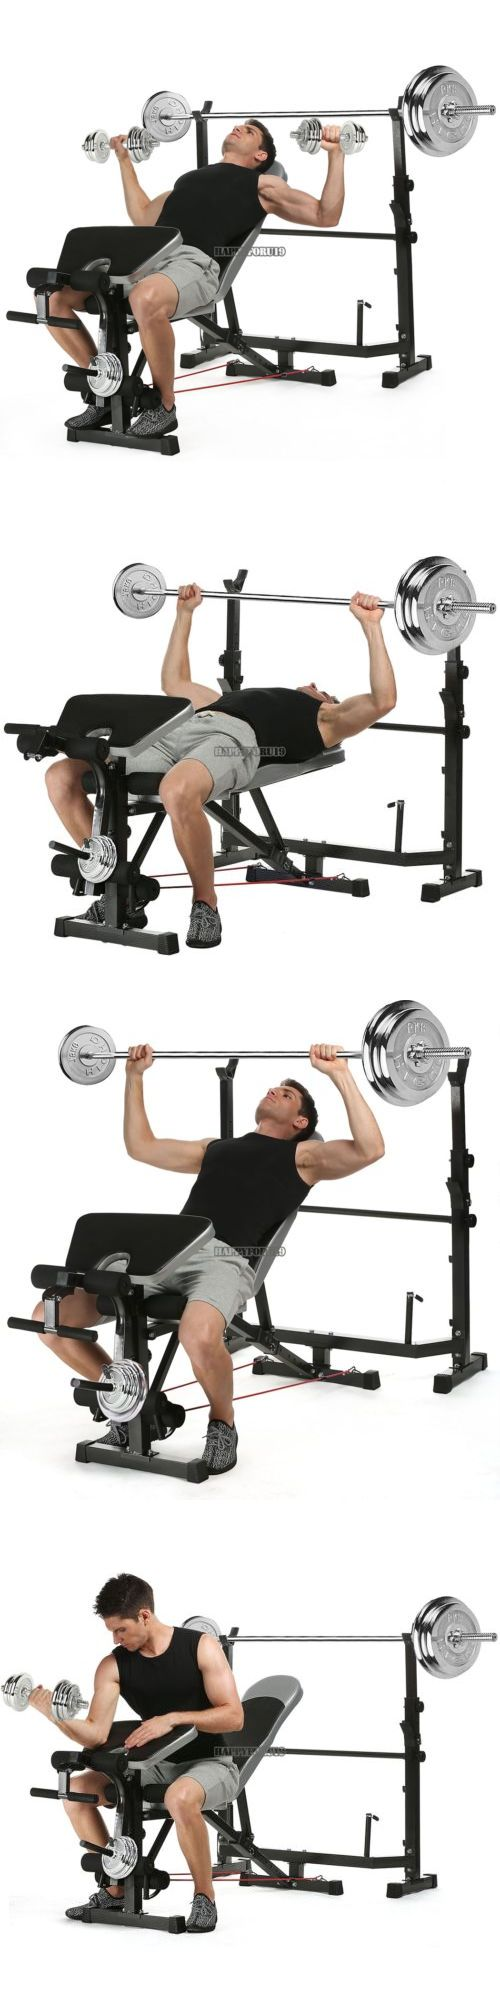 1000 Ideas About Olympic Weights On Pinterest Olympic Weight Set Weight Set And Home Gym Garage